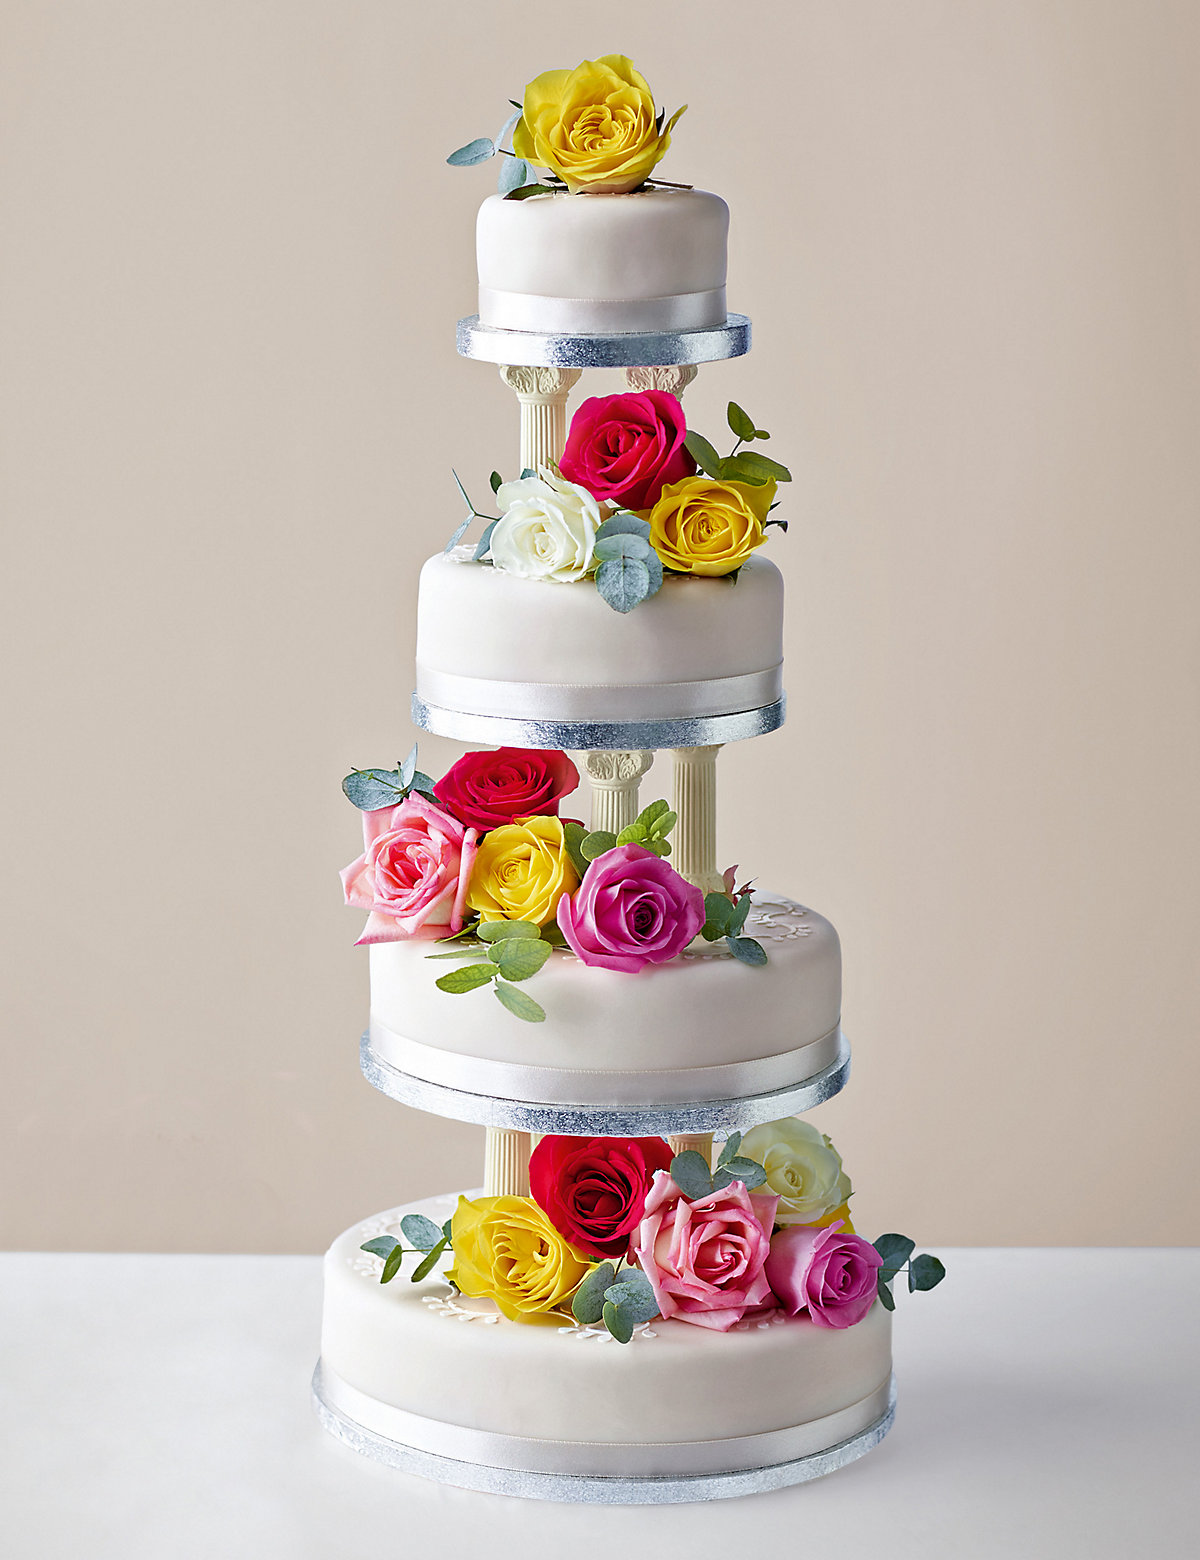 Build Your Own Traditional Wedding Cake - Fruit, Sponge or Chocolate